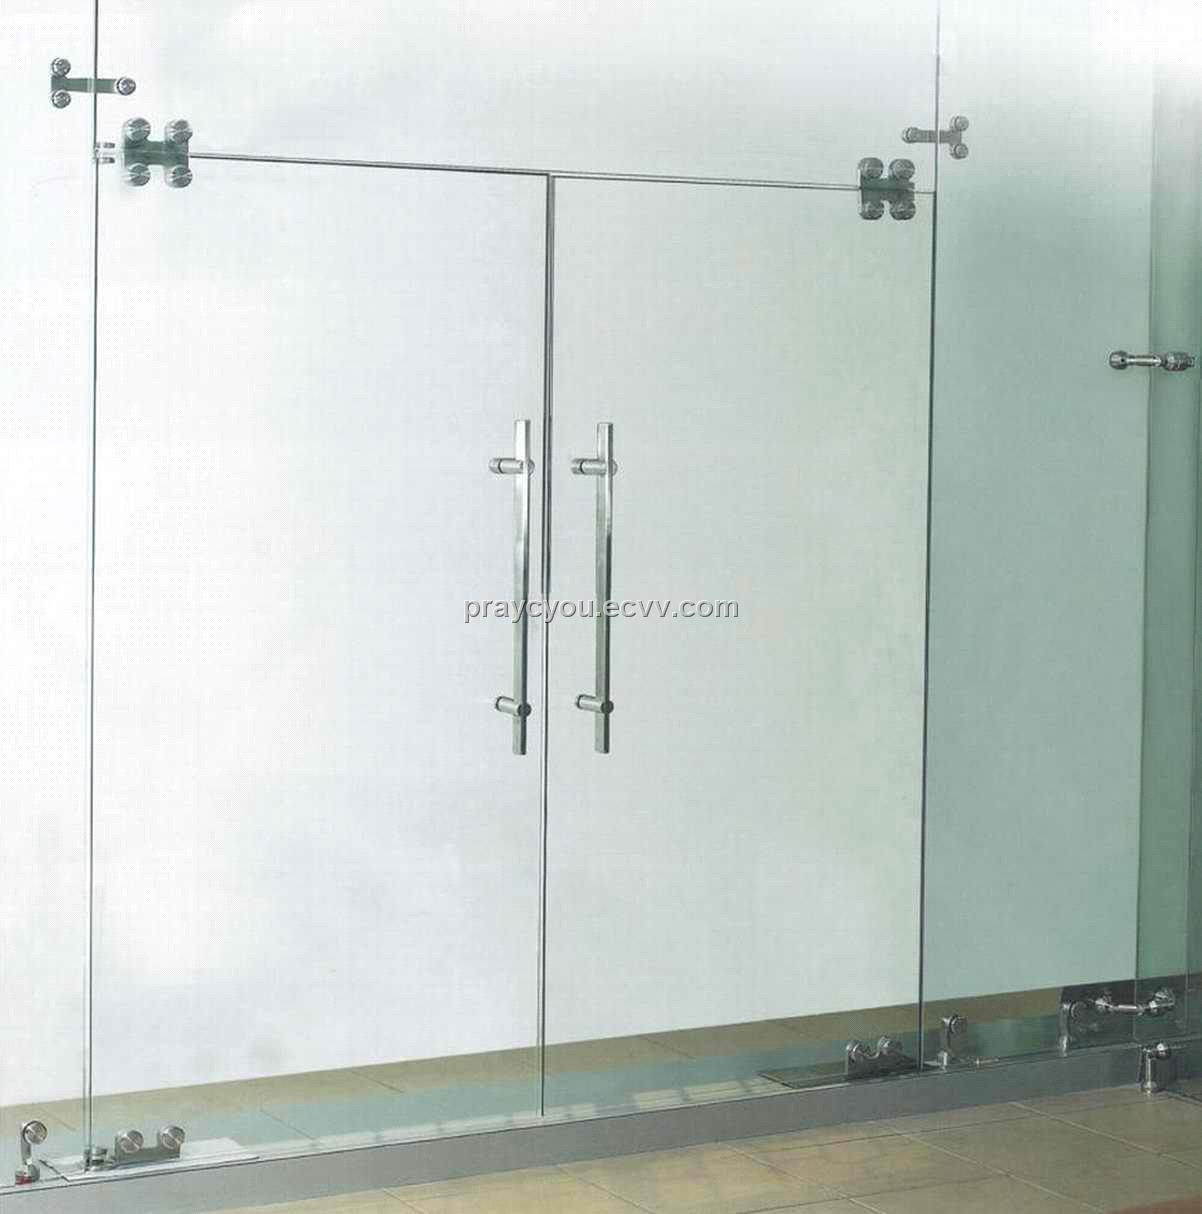 Swing door system purchasing souring agent ecvv purchasing swing door system planetlyrics Images